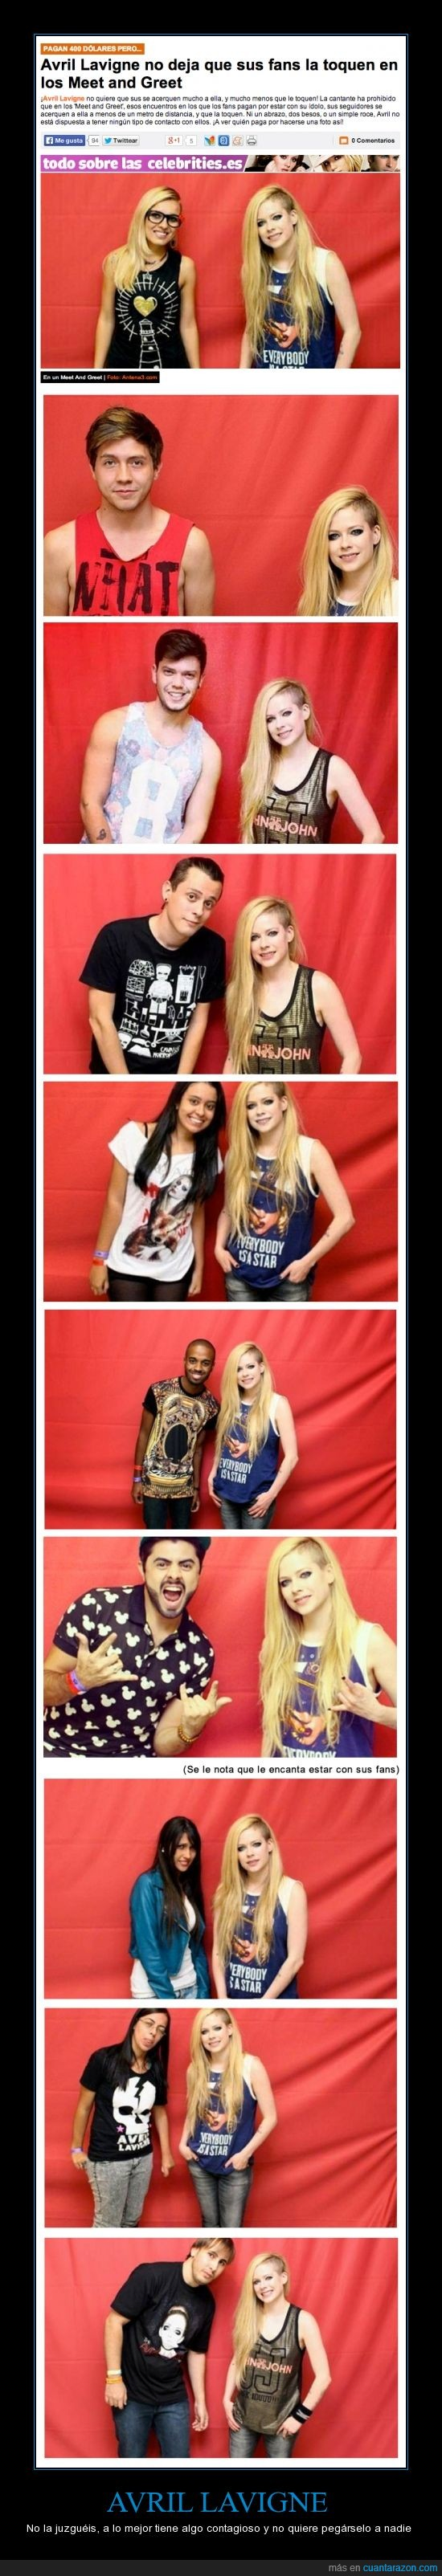 avril lavigne,borde,conocer,dinero,fans,foto,lejos,meet and greet,metro,pagar,tocar